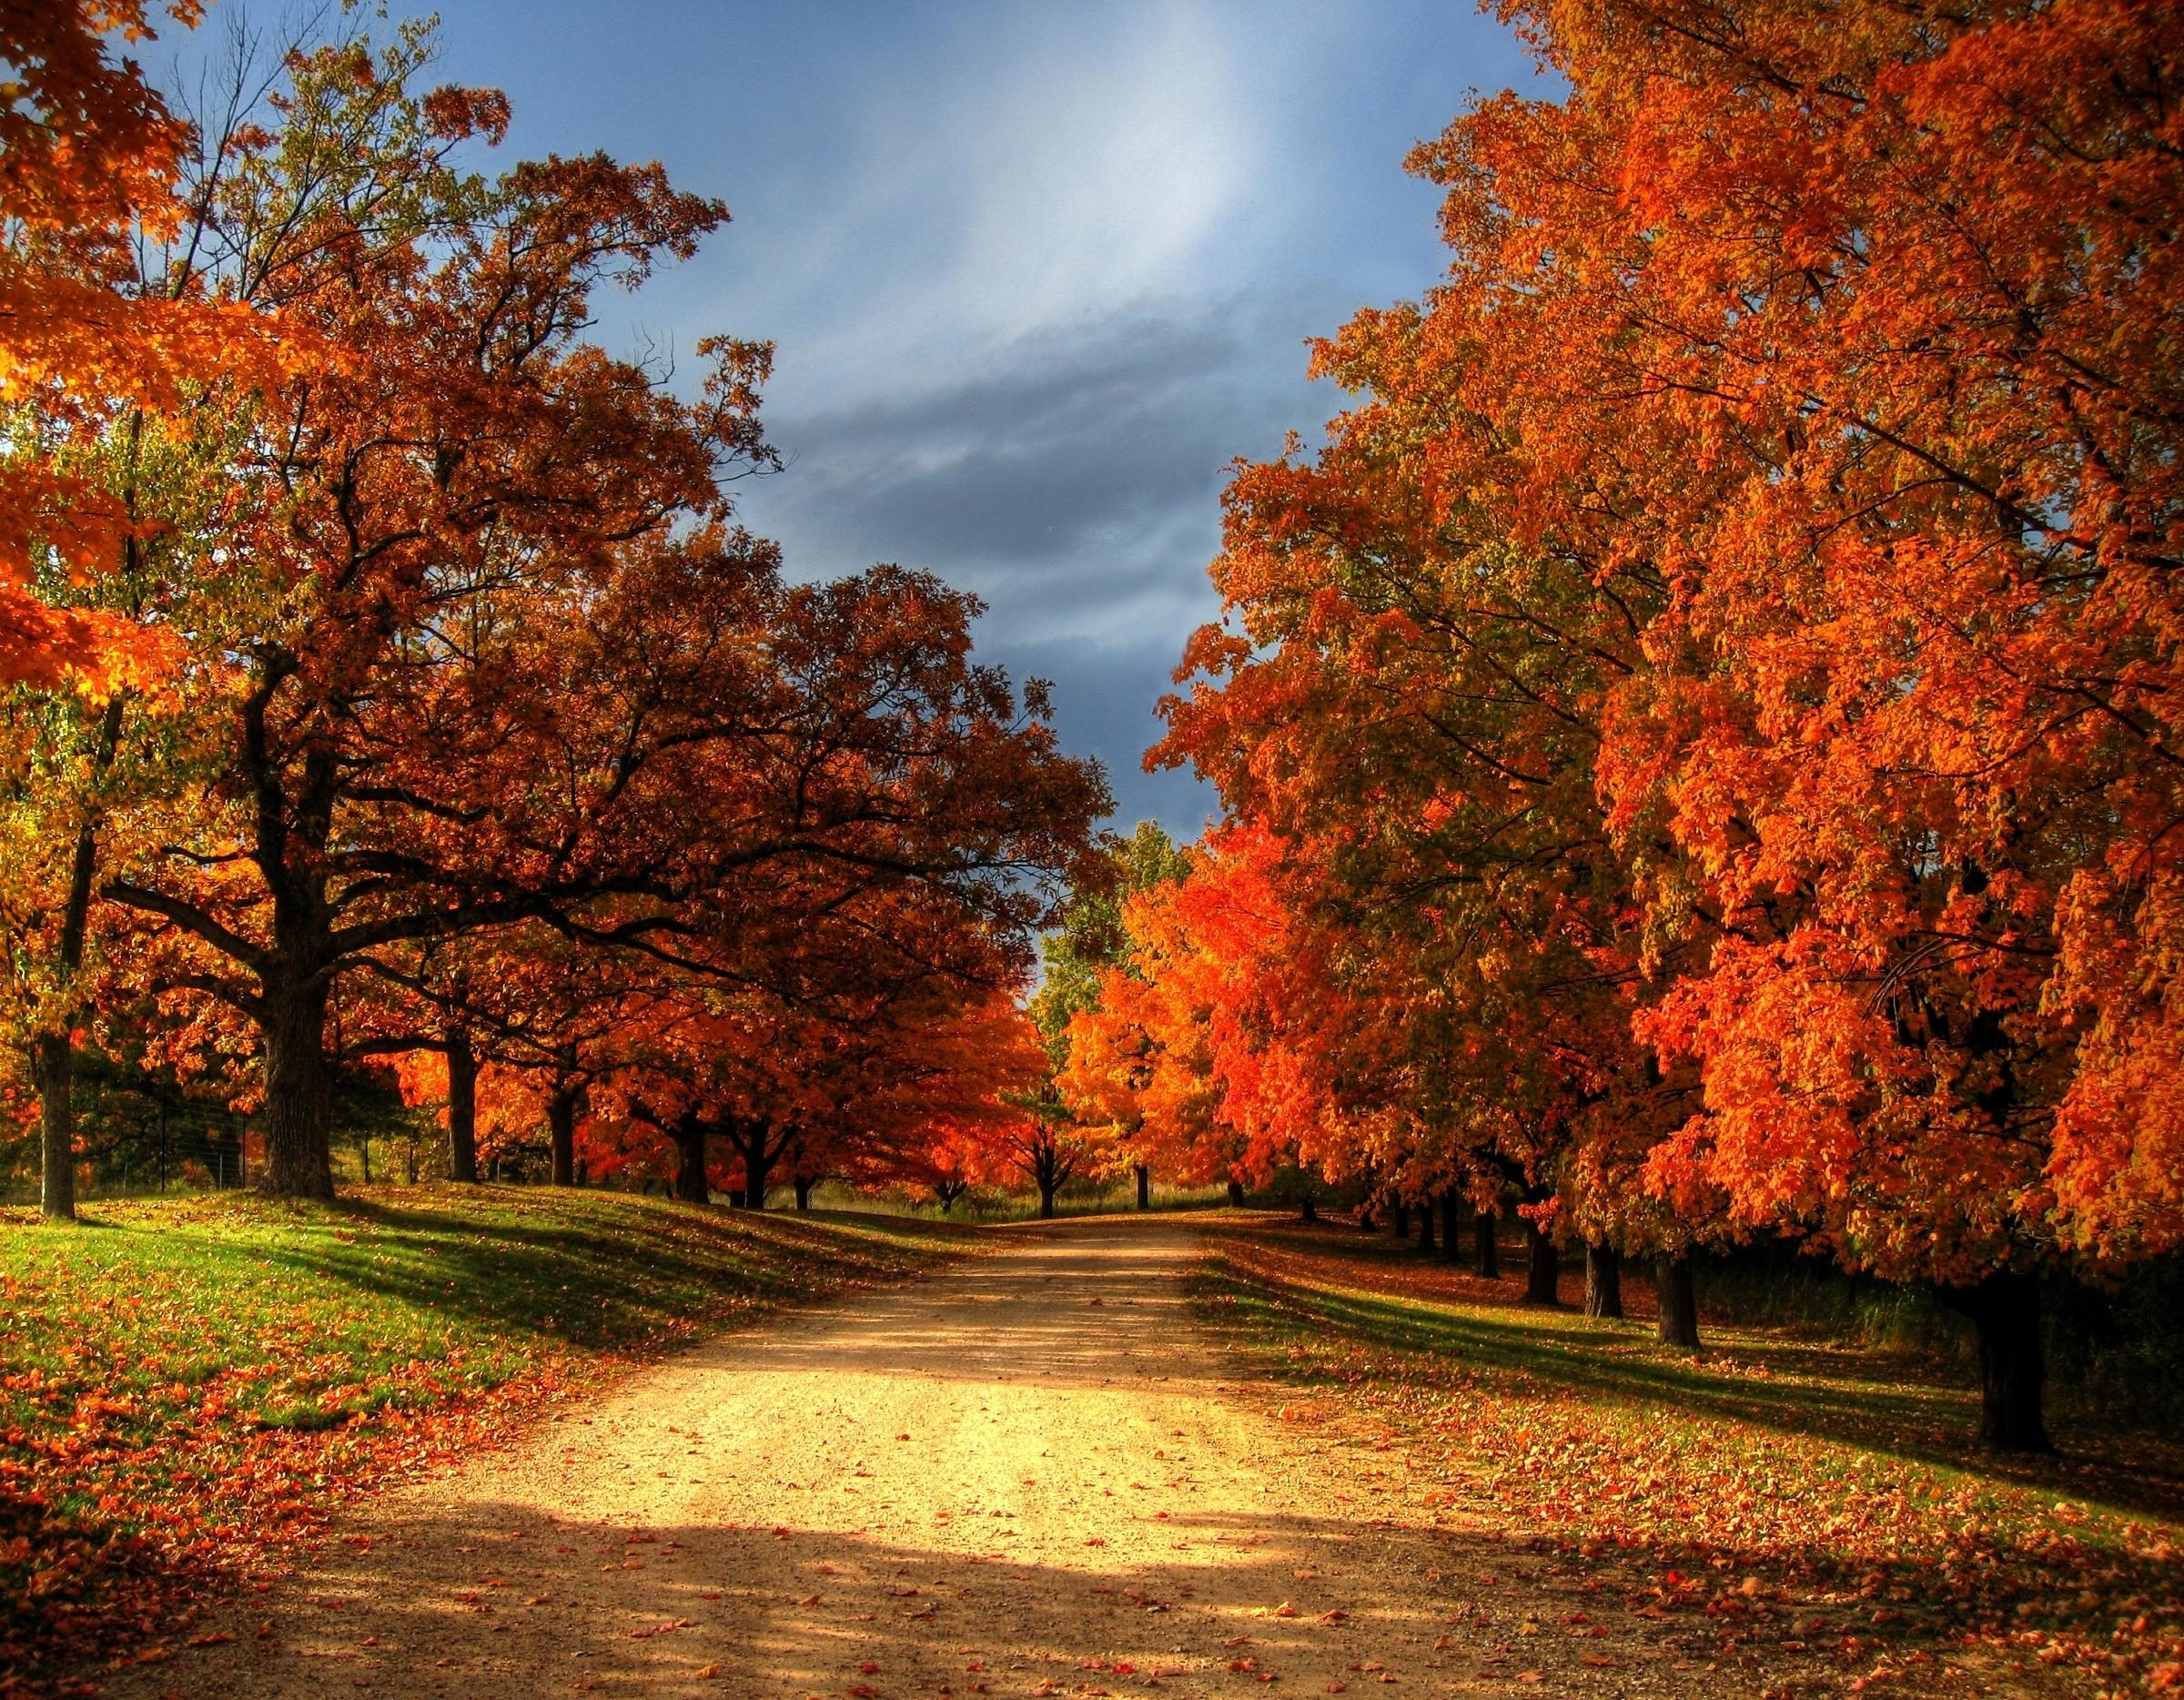 desktop backgrounds fall scenes gallery (78+ images)